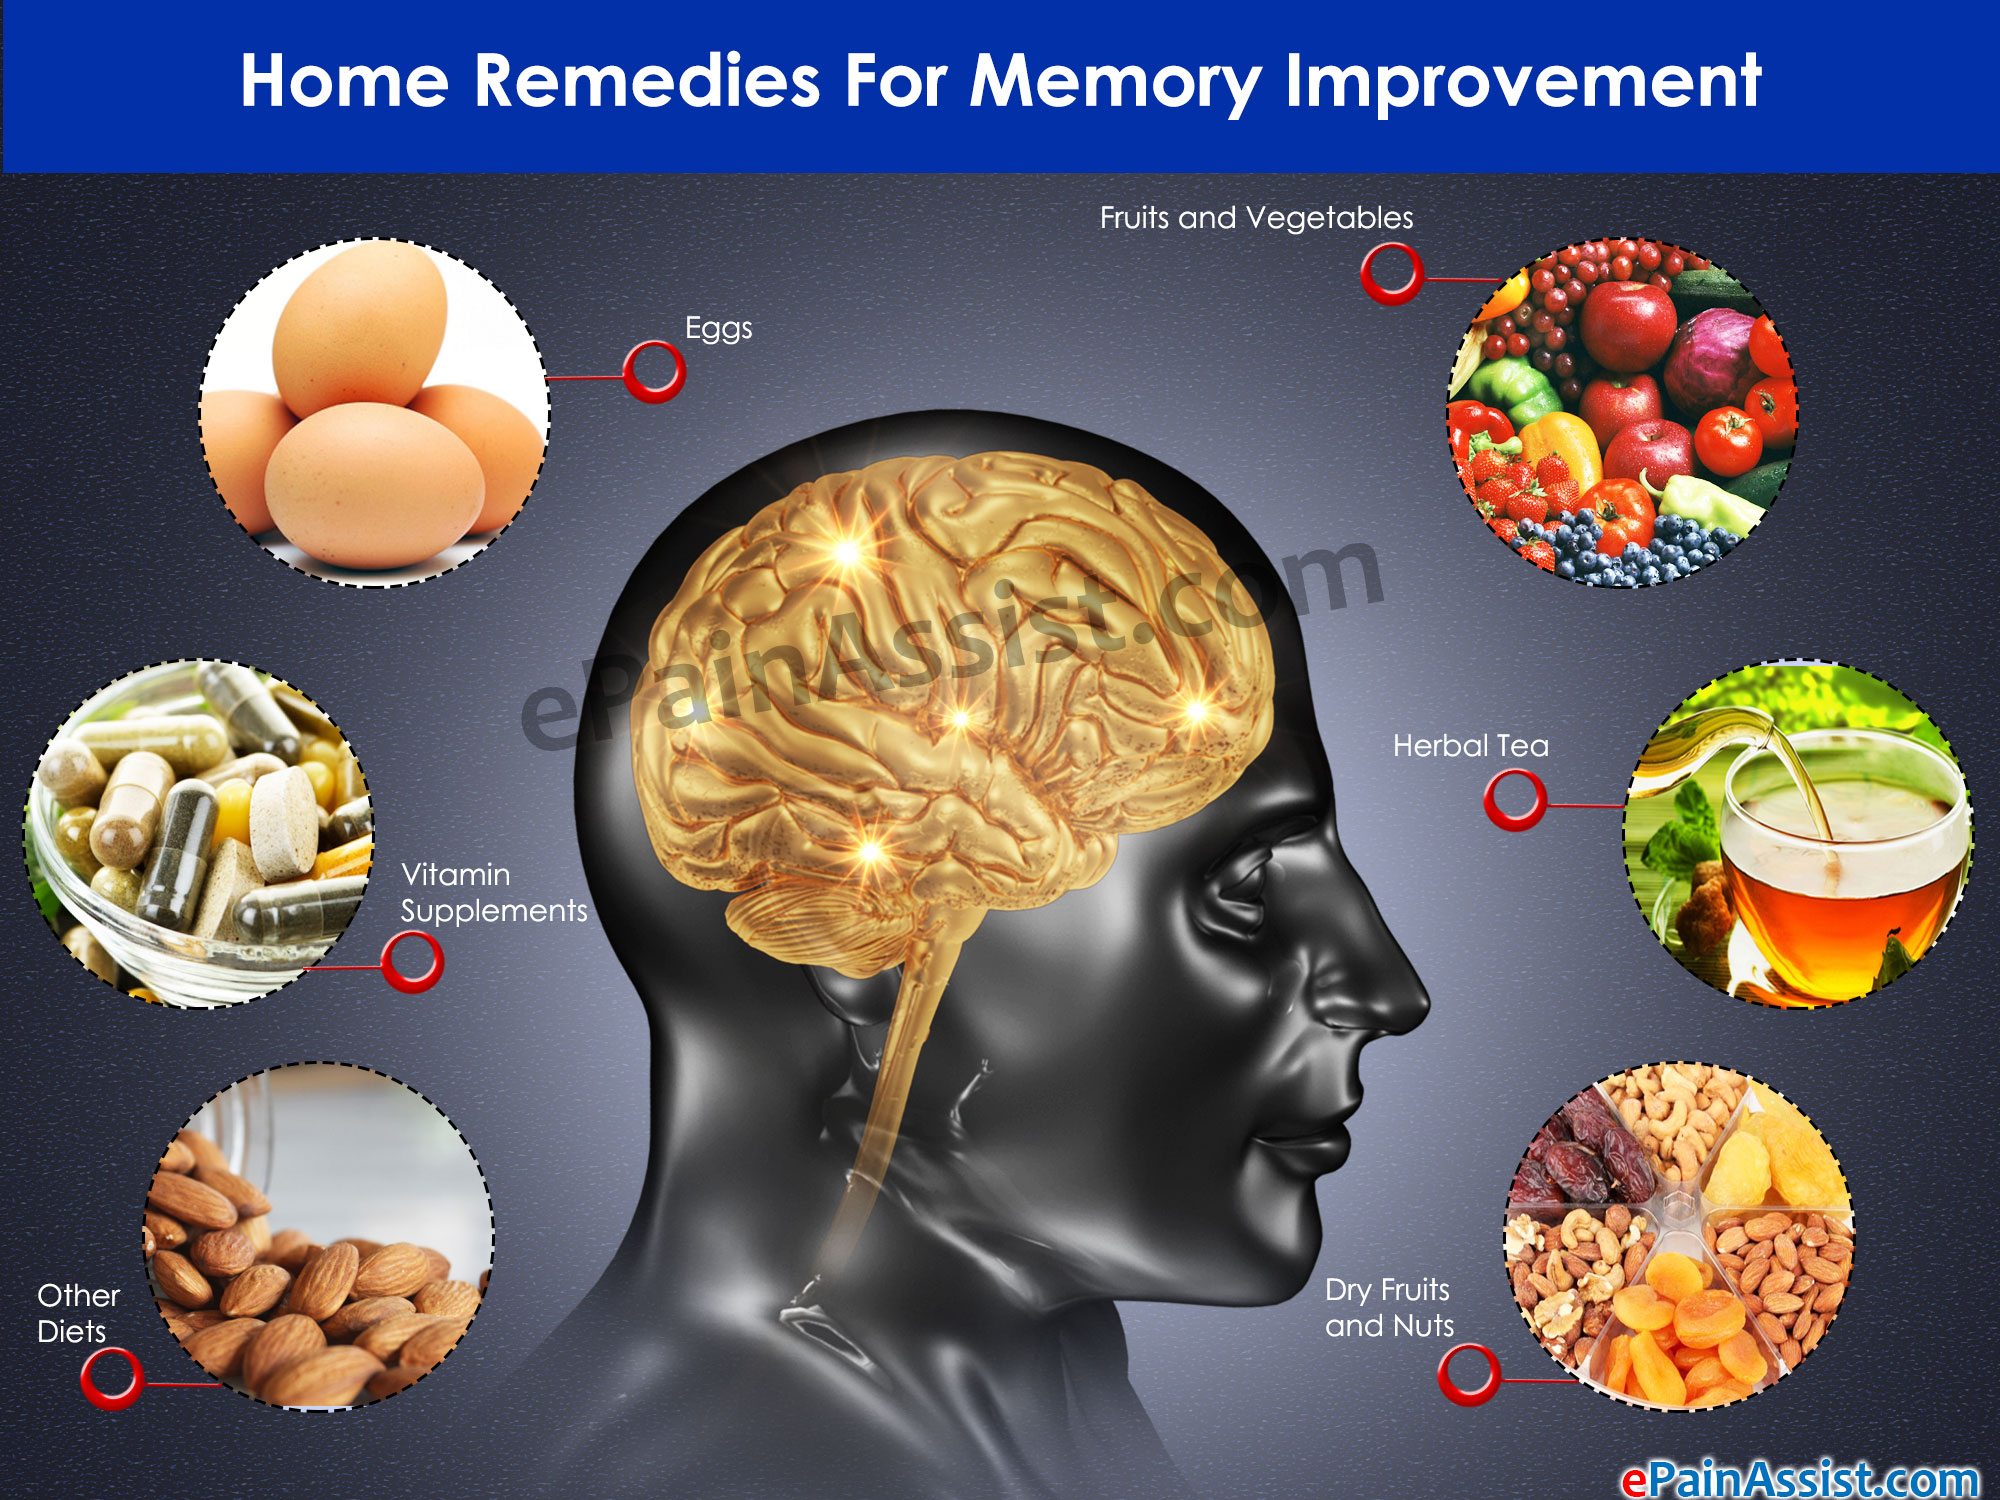 Home Remedies For Memory Improvement